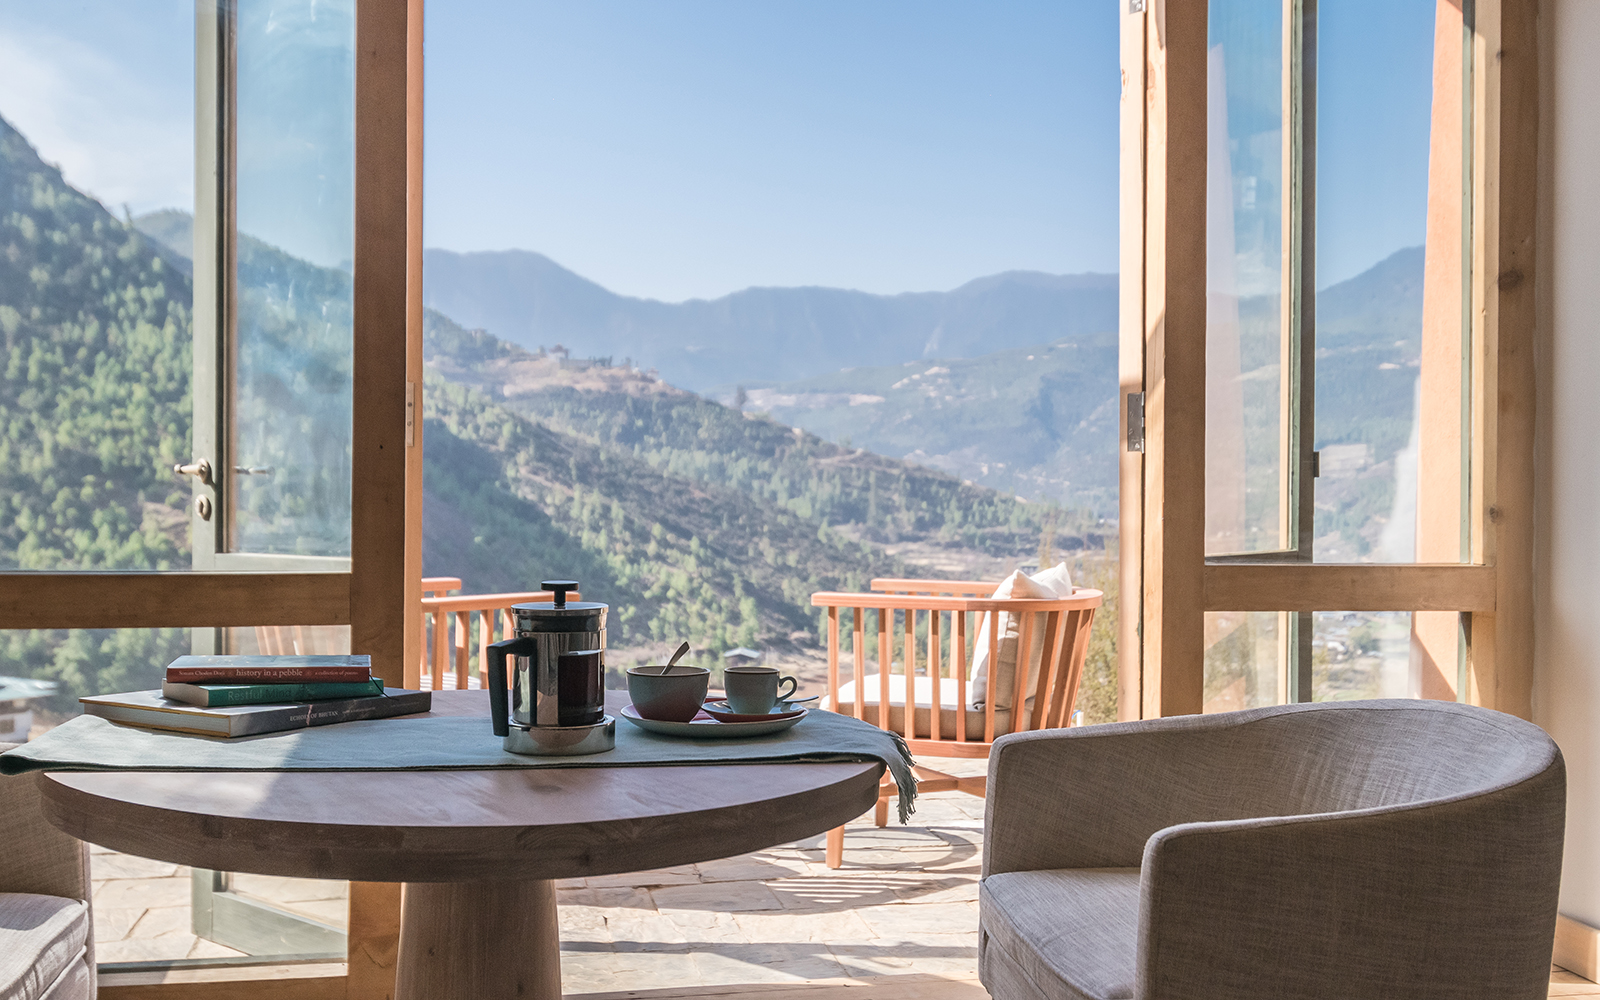 Save Nearly 40% off Stays at Bhutan's Newest Wellness Retreat